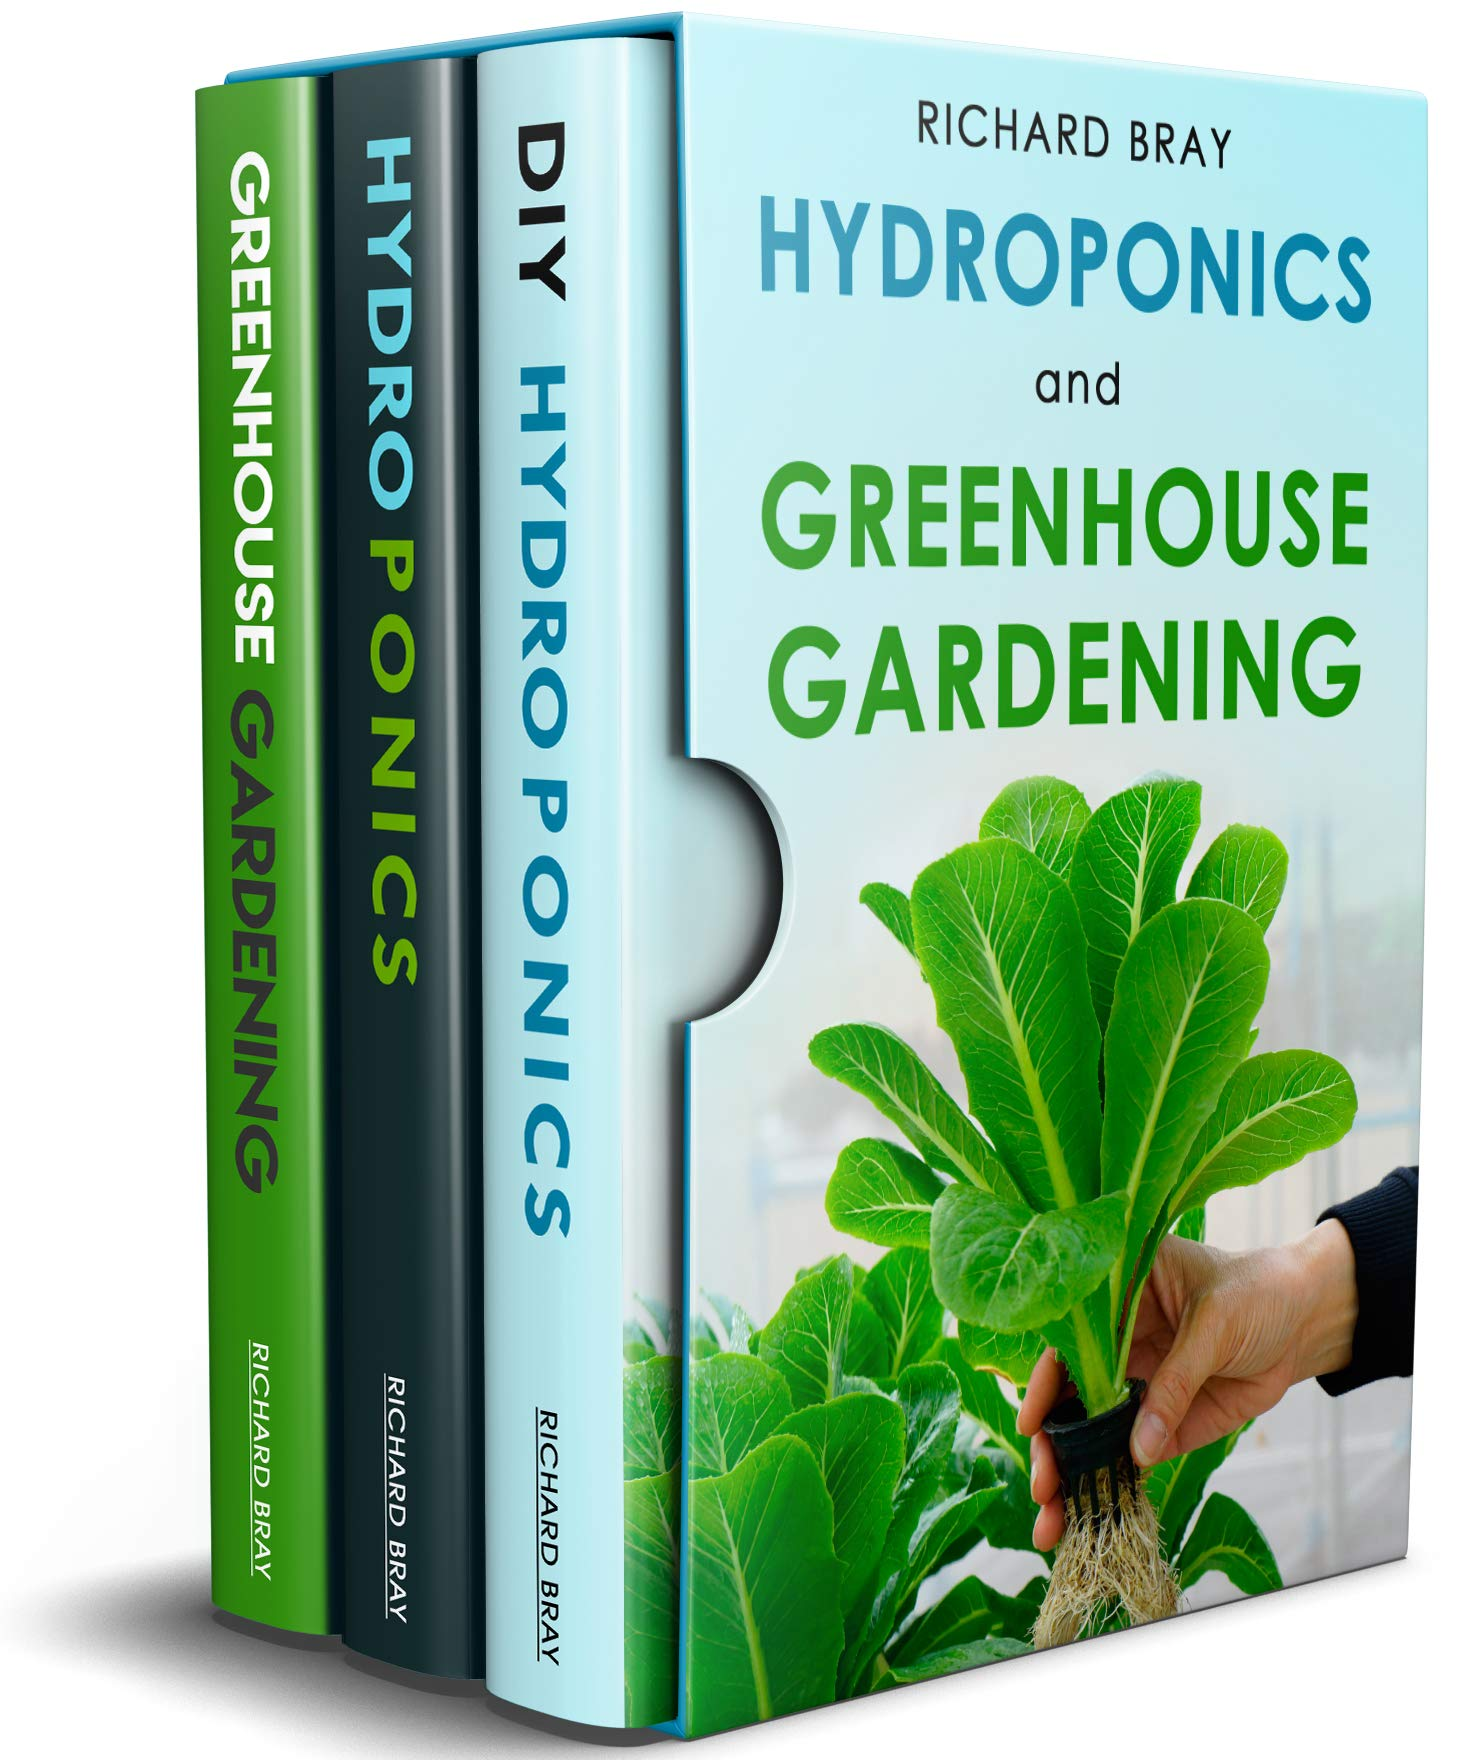 Hydroponics and Greenhouse Gardening: 3-in-1 Gardening Book Bundle to Grow Vegetables Herbs and Fruit All-Year-Round (English Edition)